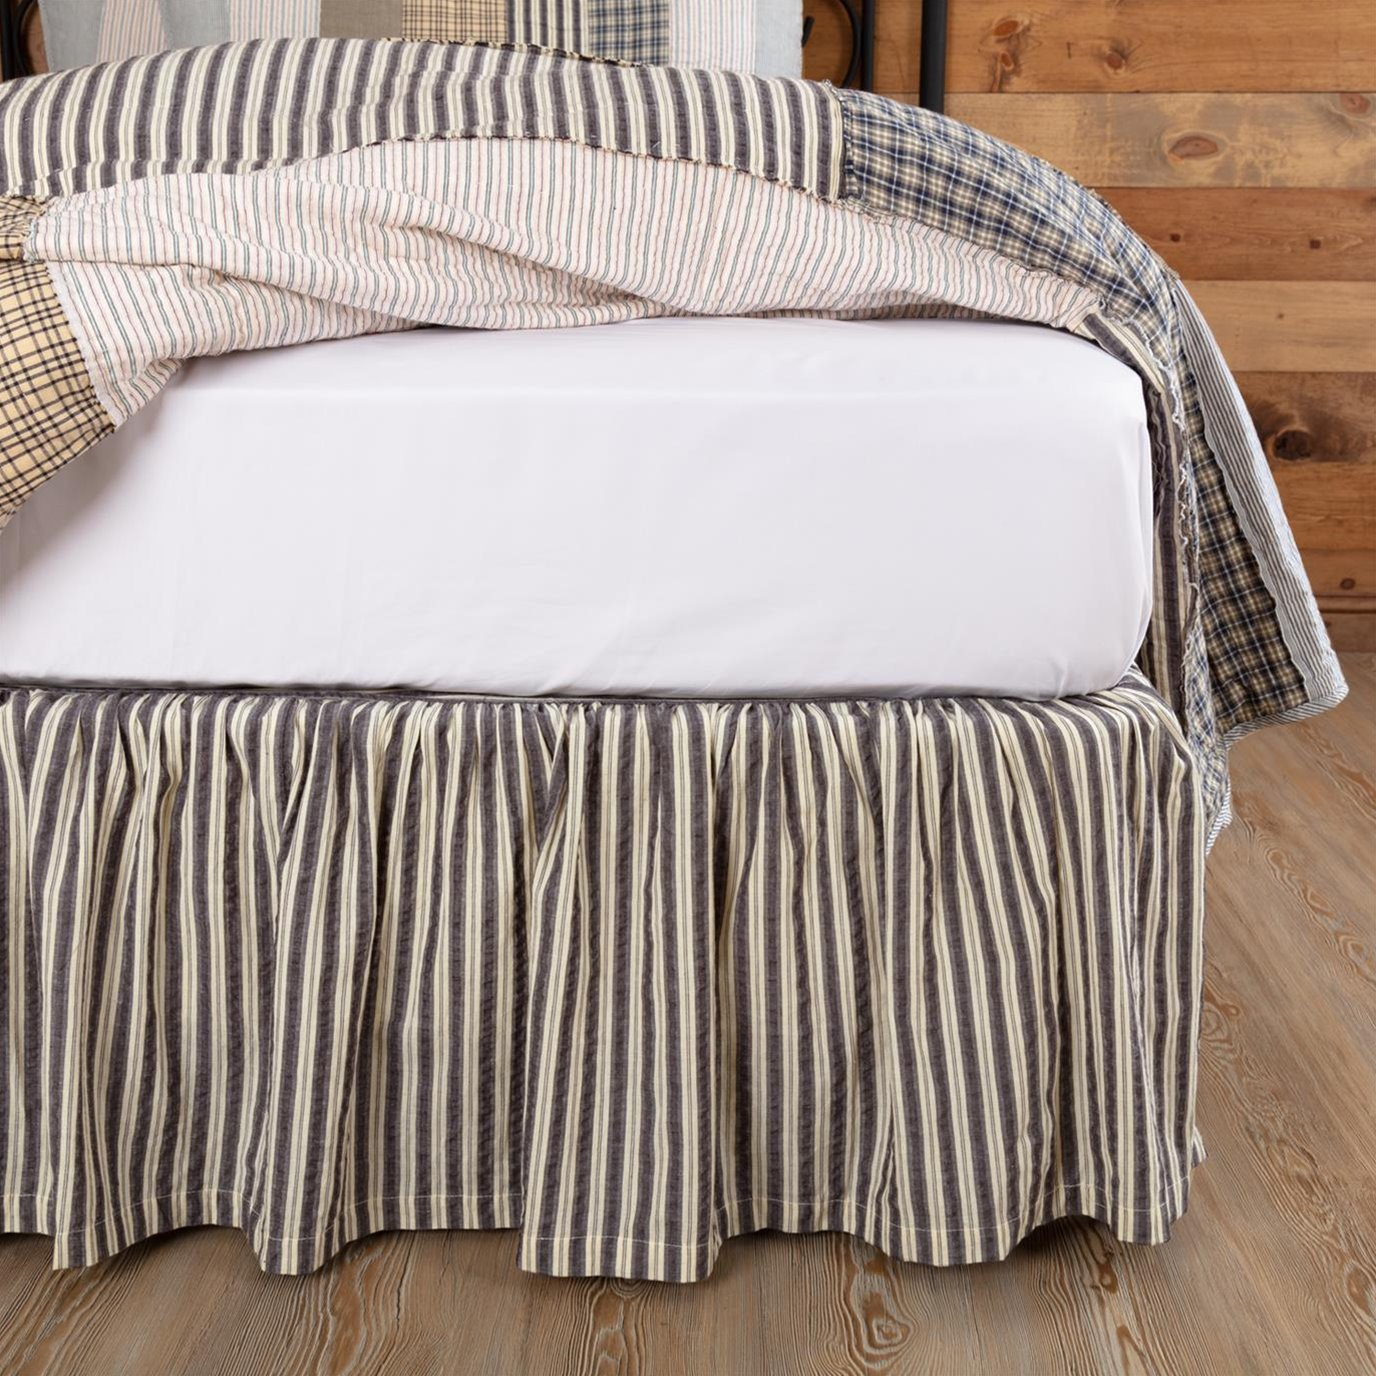 Ashmont King Bedskirt By Vhc Brands